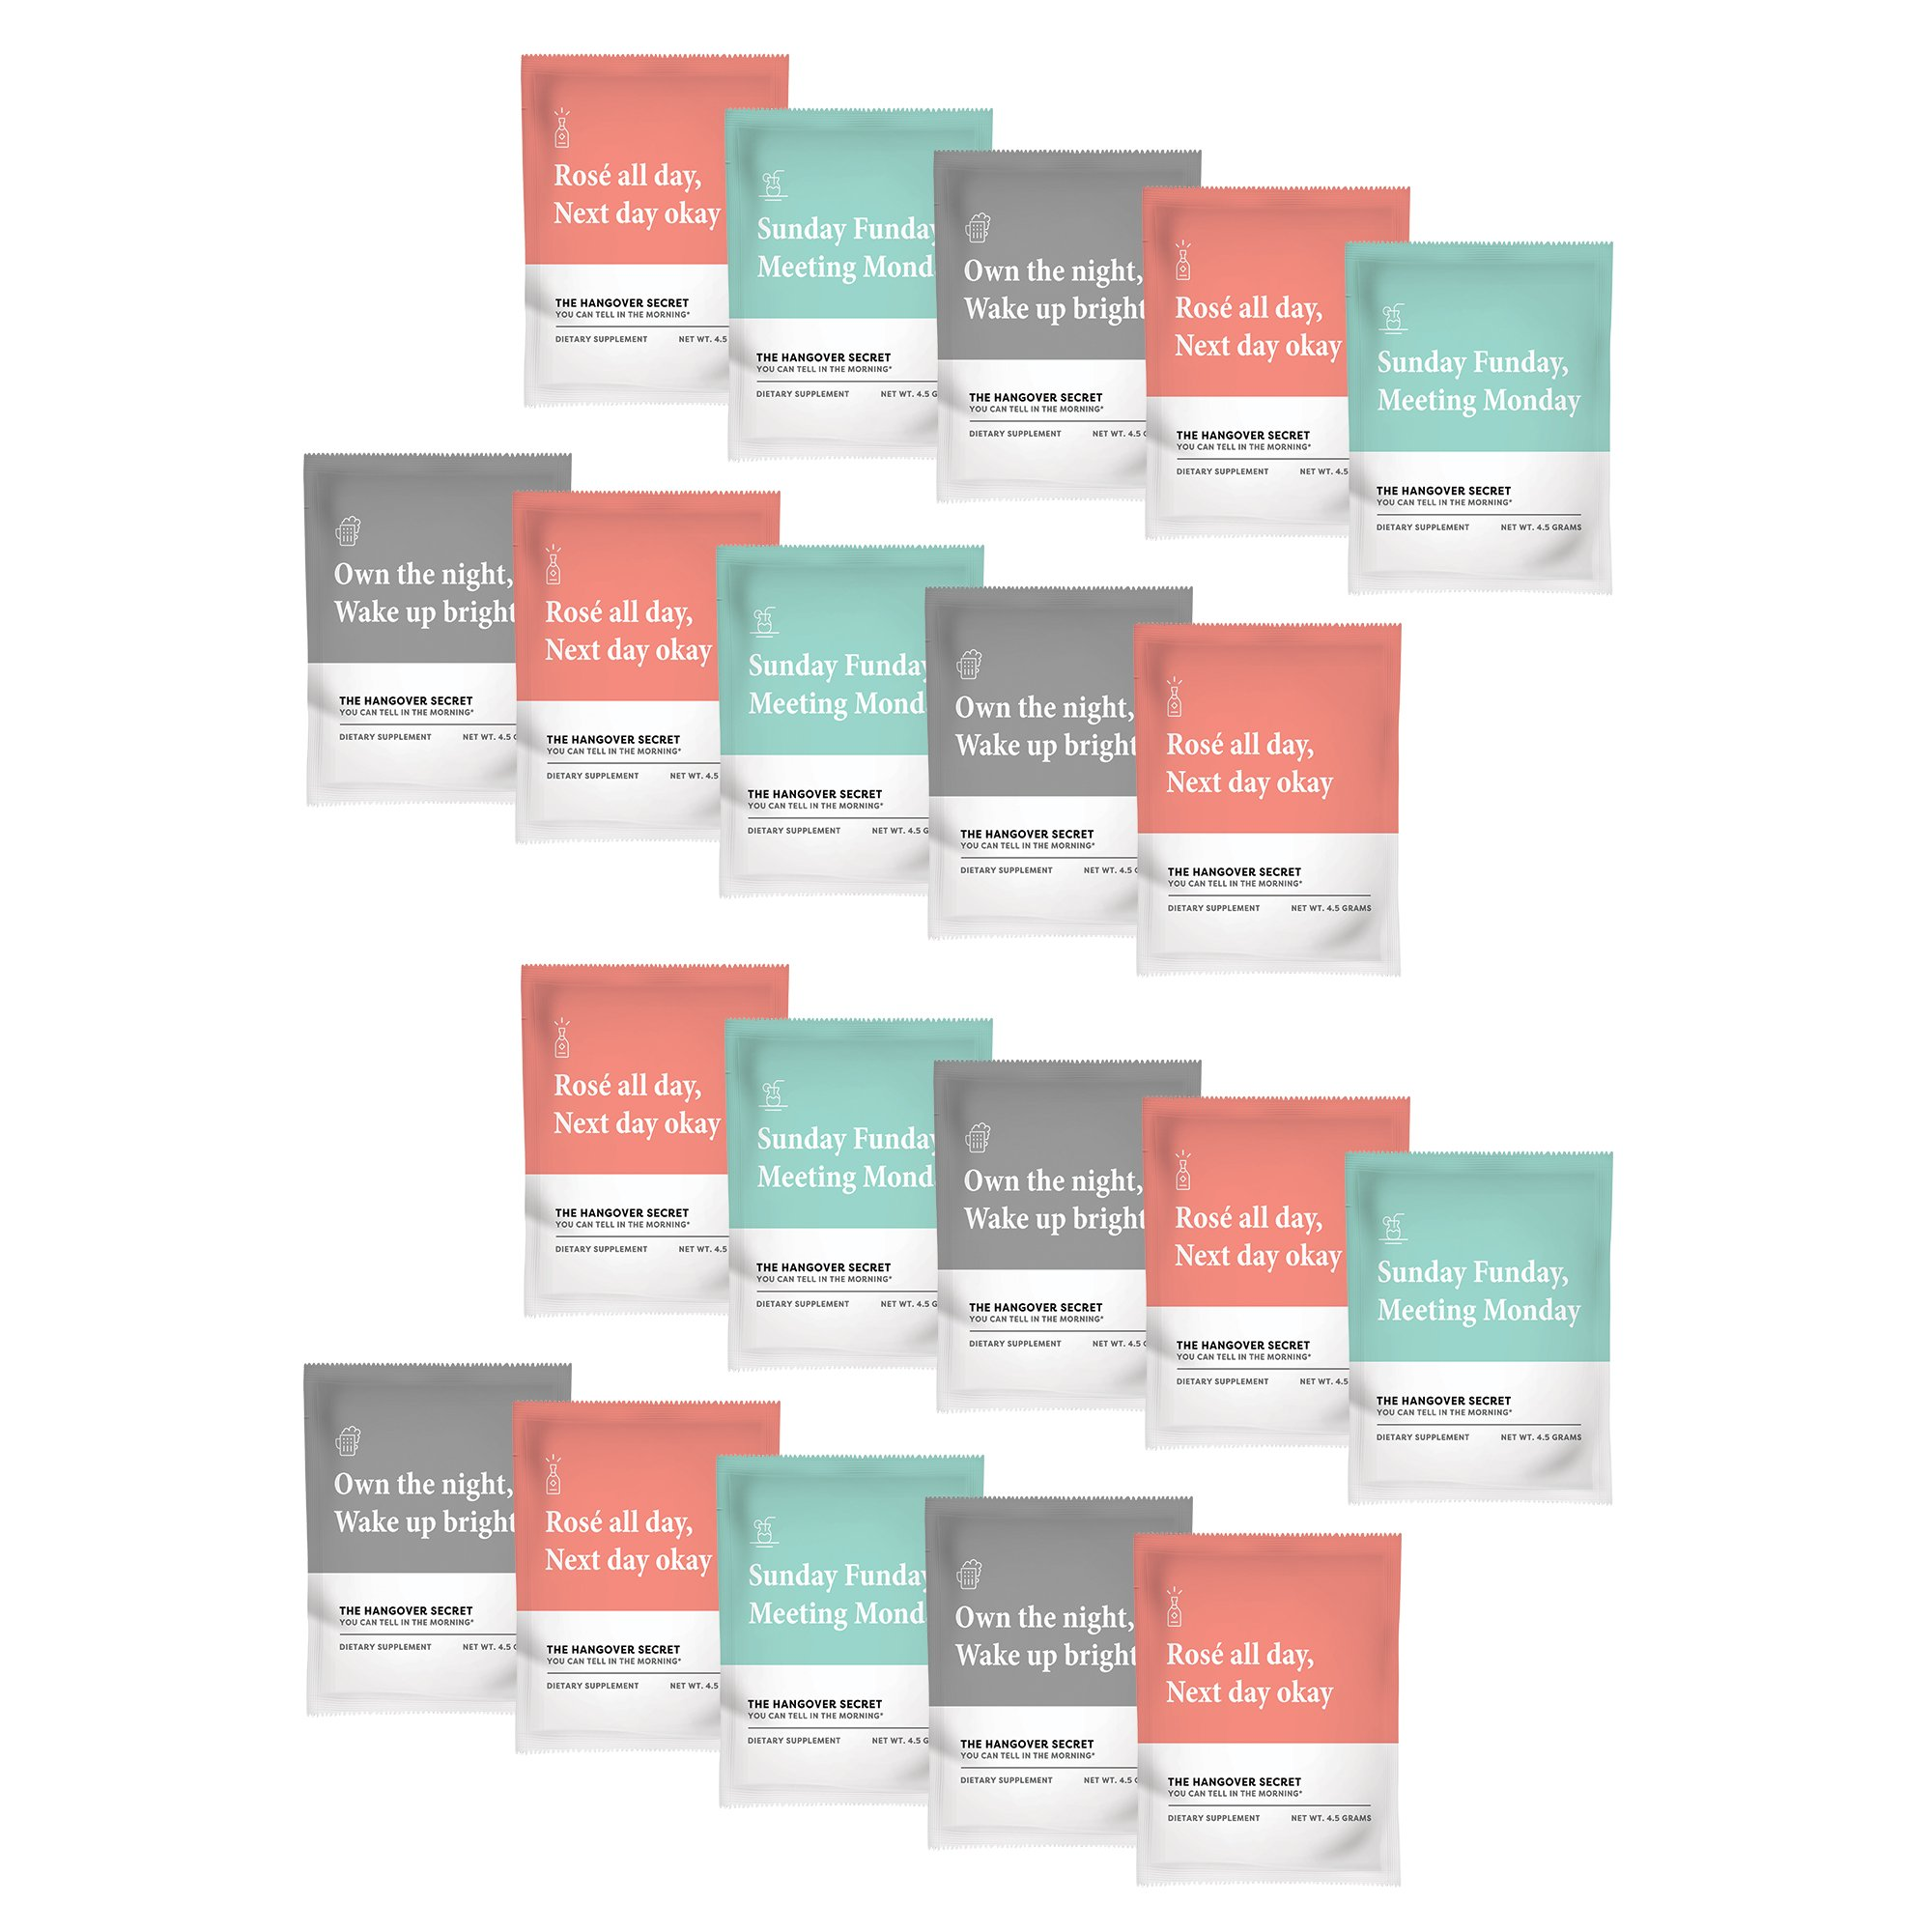 Hangover Secret | #1 Prevention by Pharmacist for Recovery - Powder Packets Formulated for Alcohol Metabolism w/Vitamin & Electrolyte Replenishment.Perfect for Wedding, Bachelorette Kits or Travel